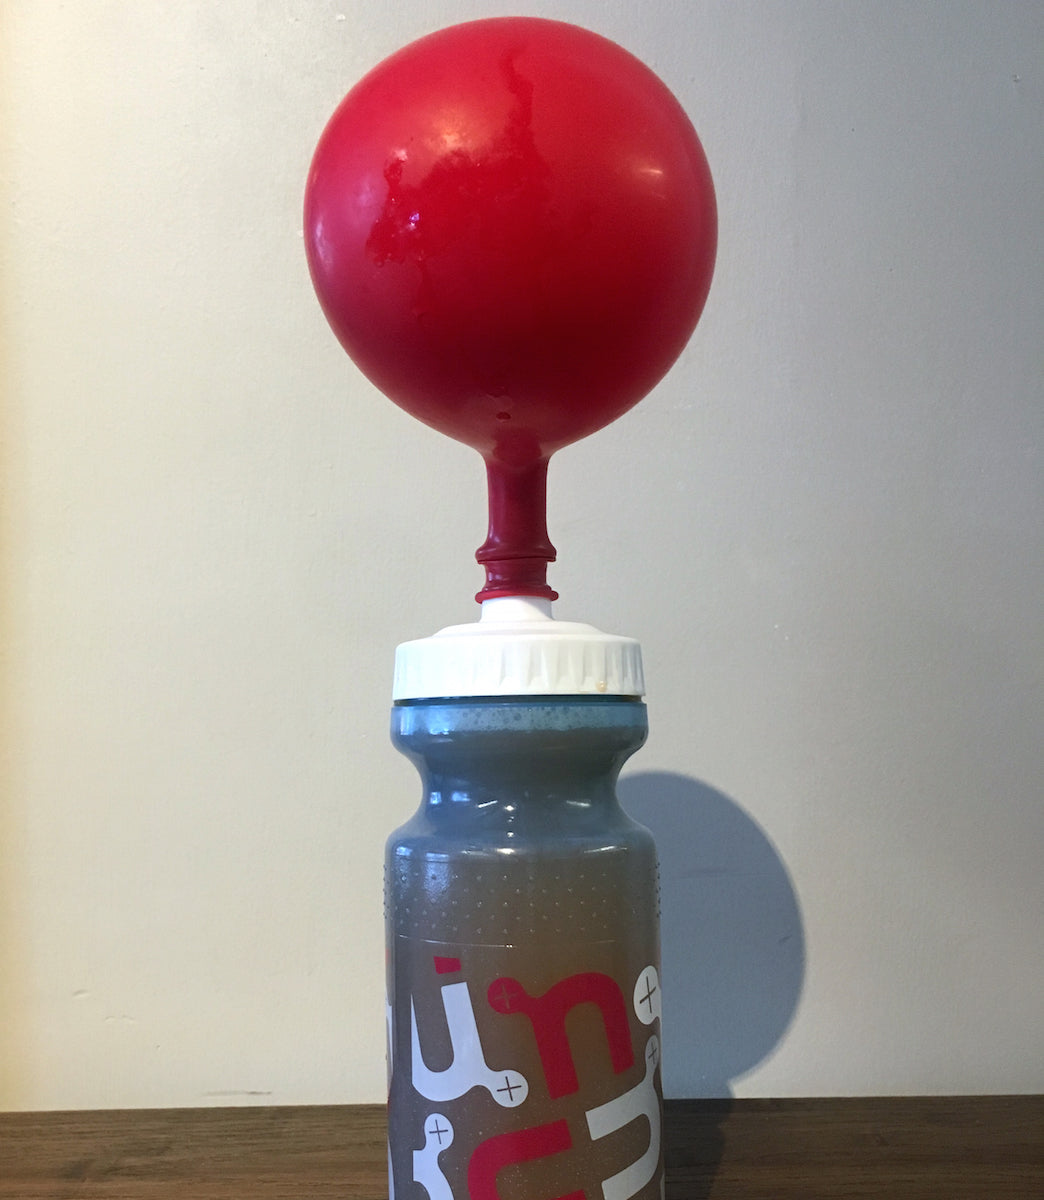 Nuun water bottle with red balloon